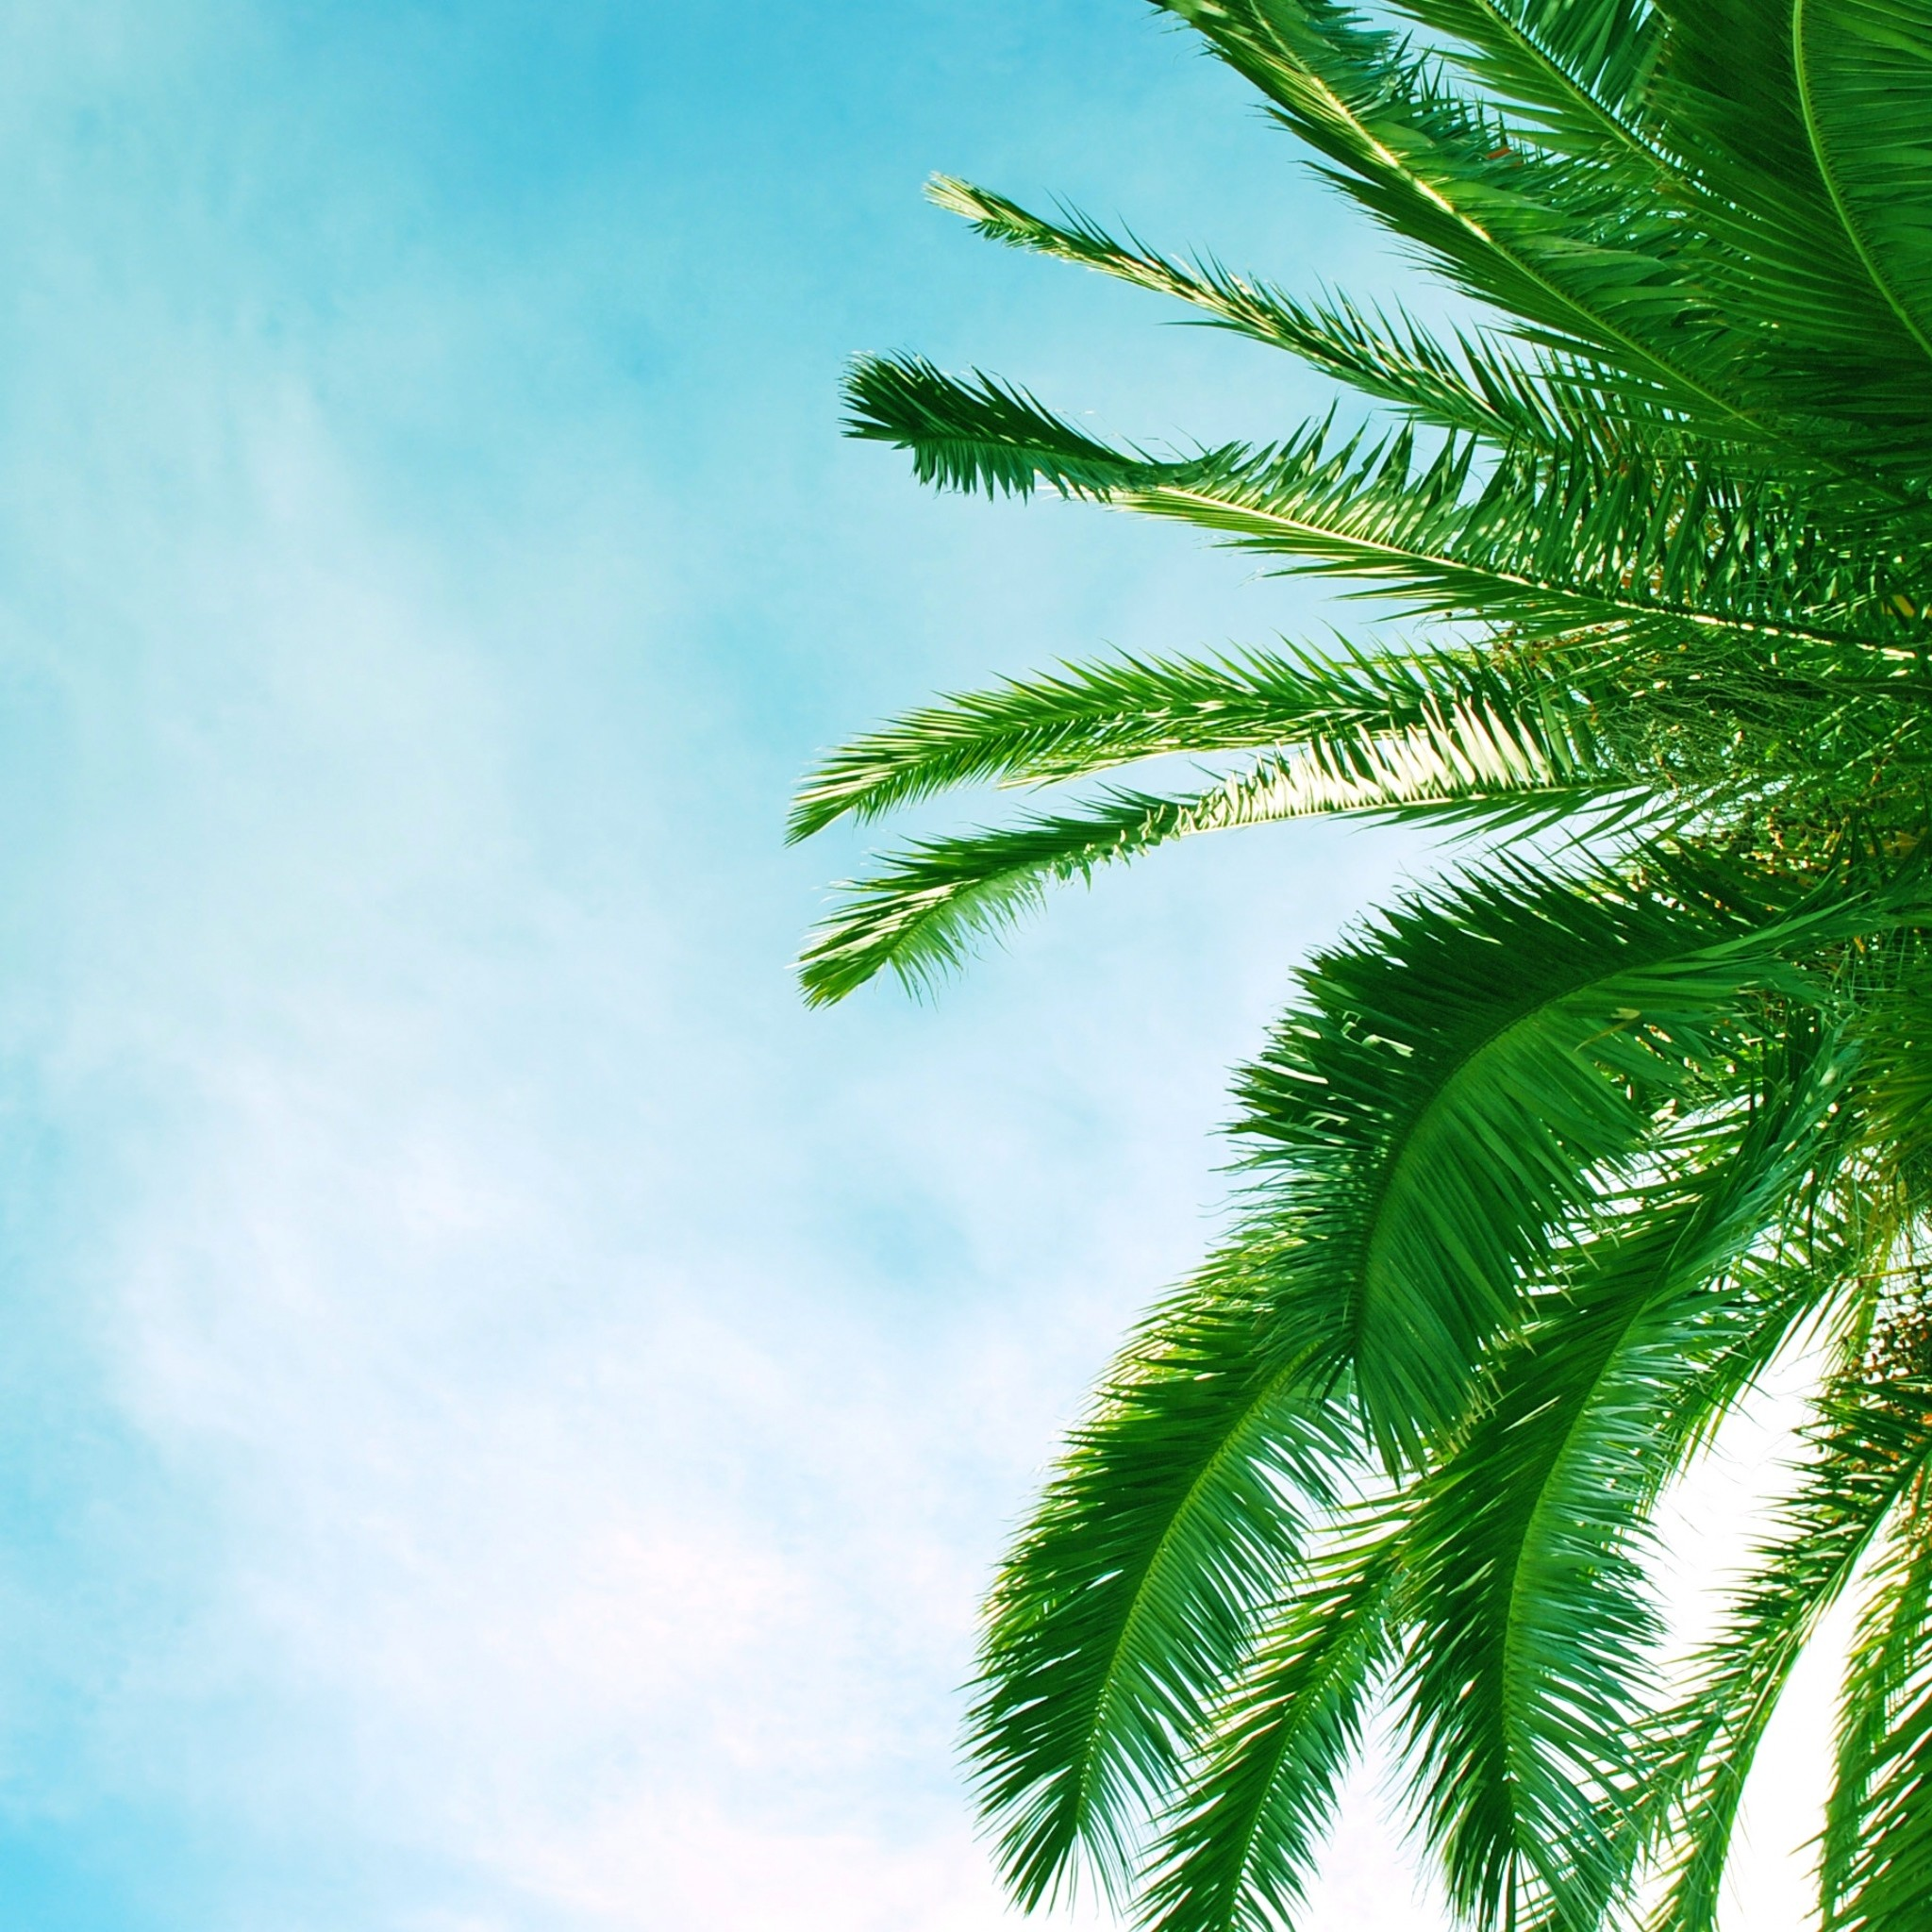 Wallpaper palm tree, krone, branches, leaves, clouds, sky, azure